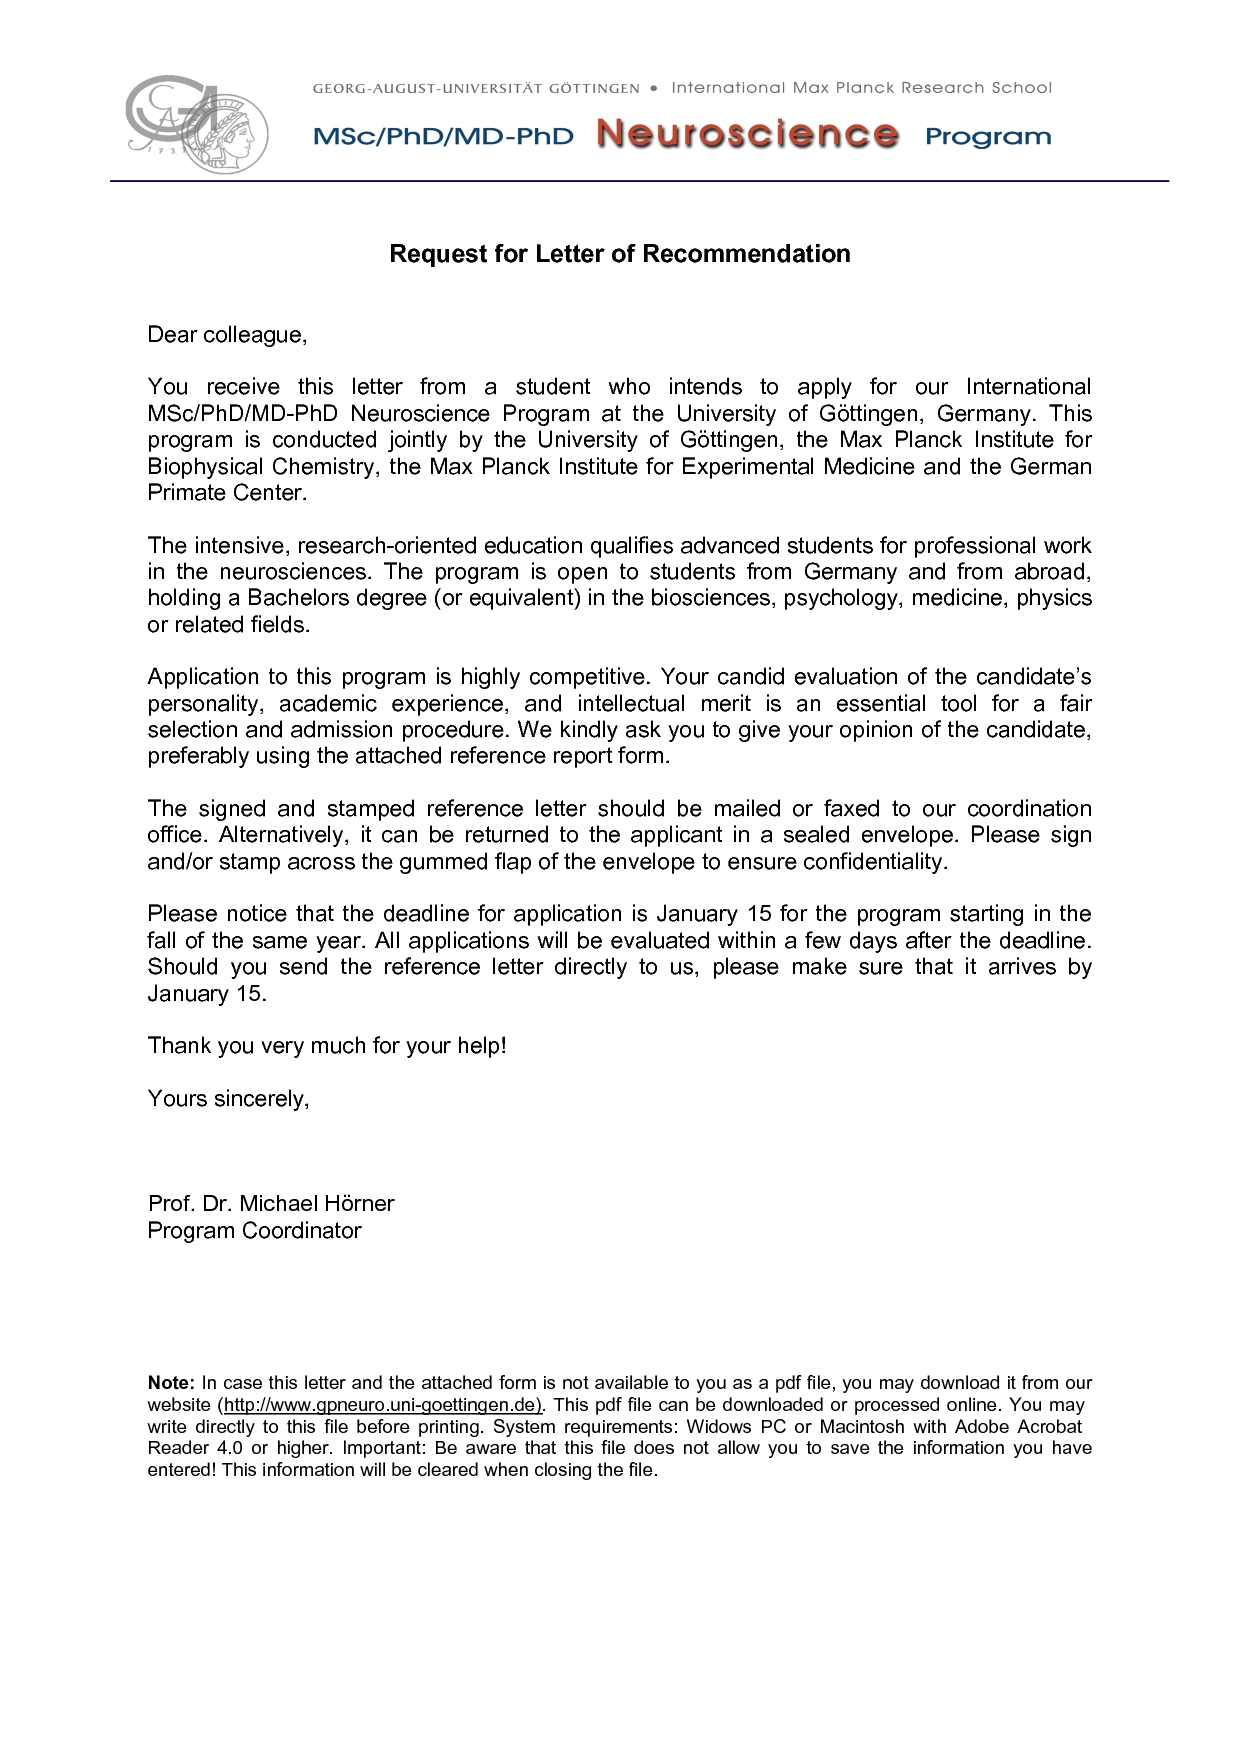 reference letter template for coworker example-Re mendation letter for work colleague image hd sample re mendation letter for work colleague image hd sample 1-h